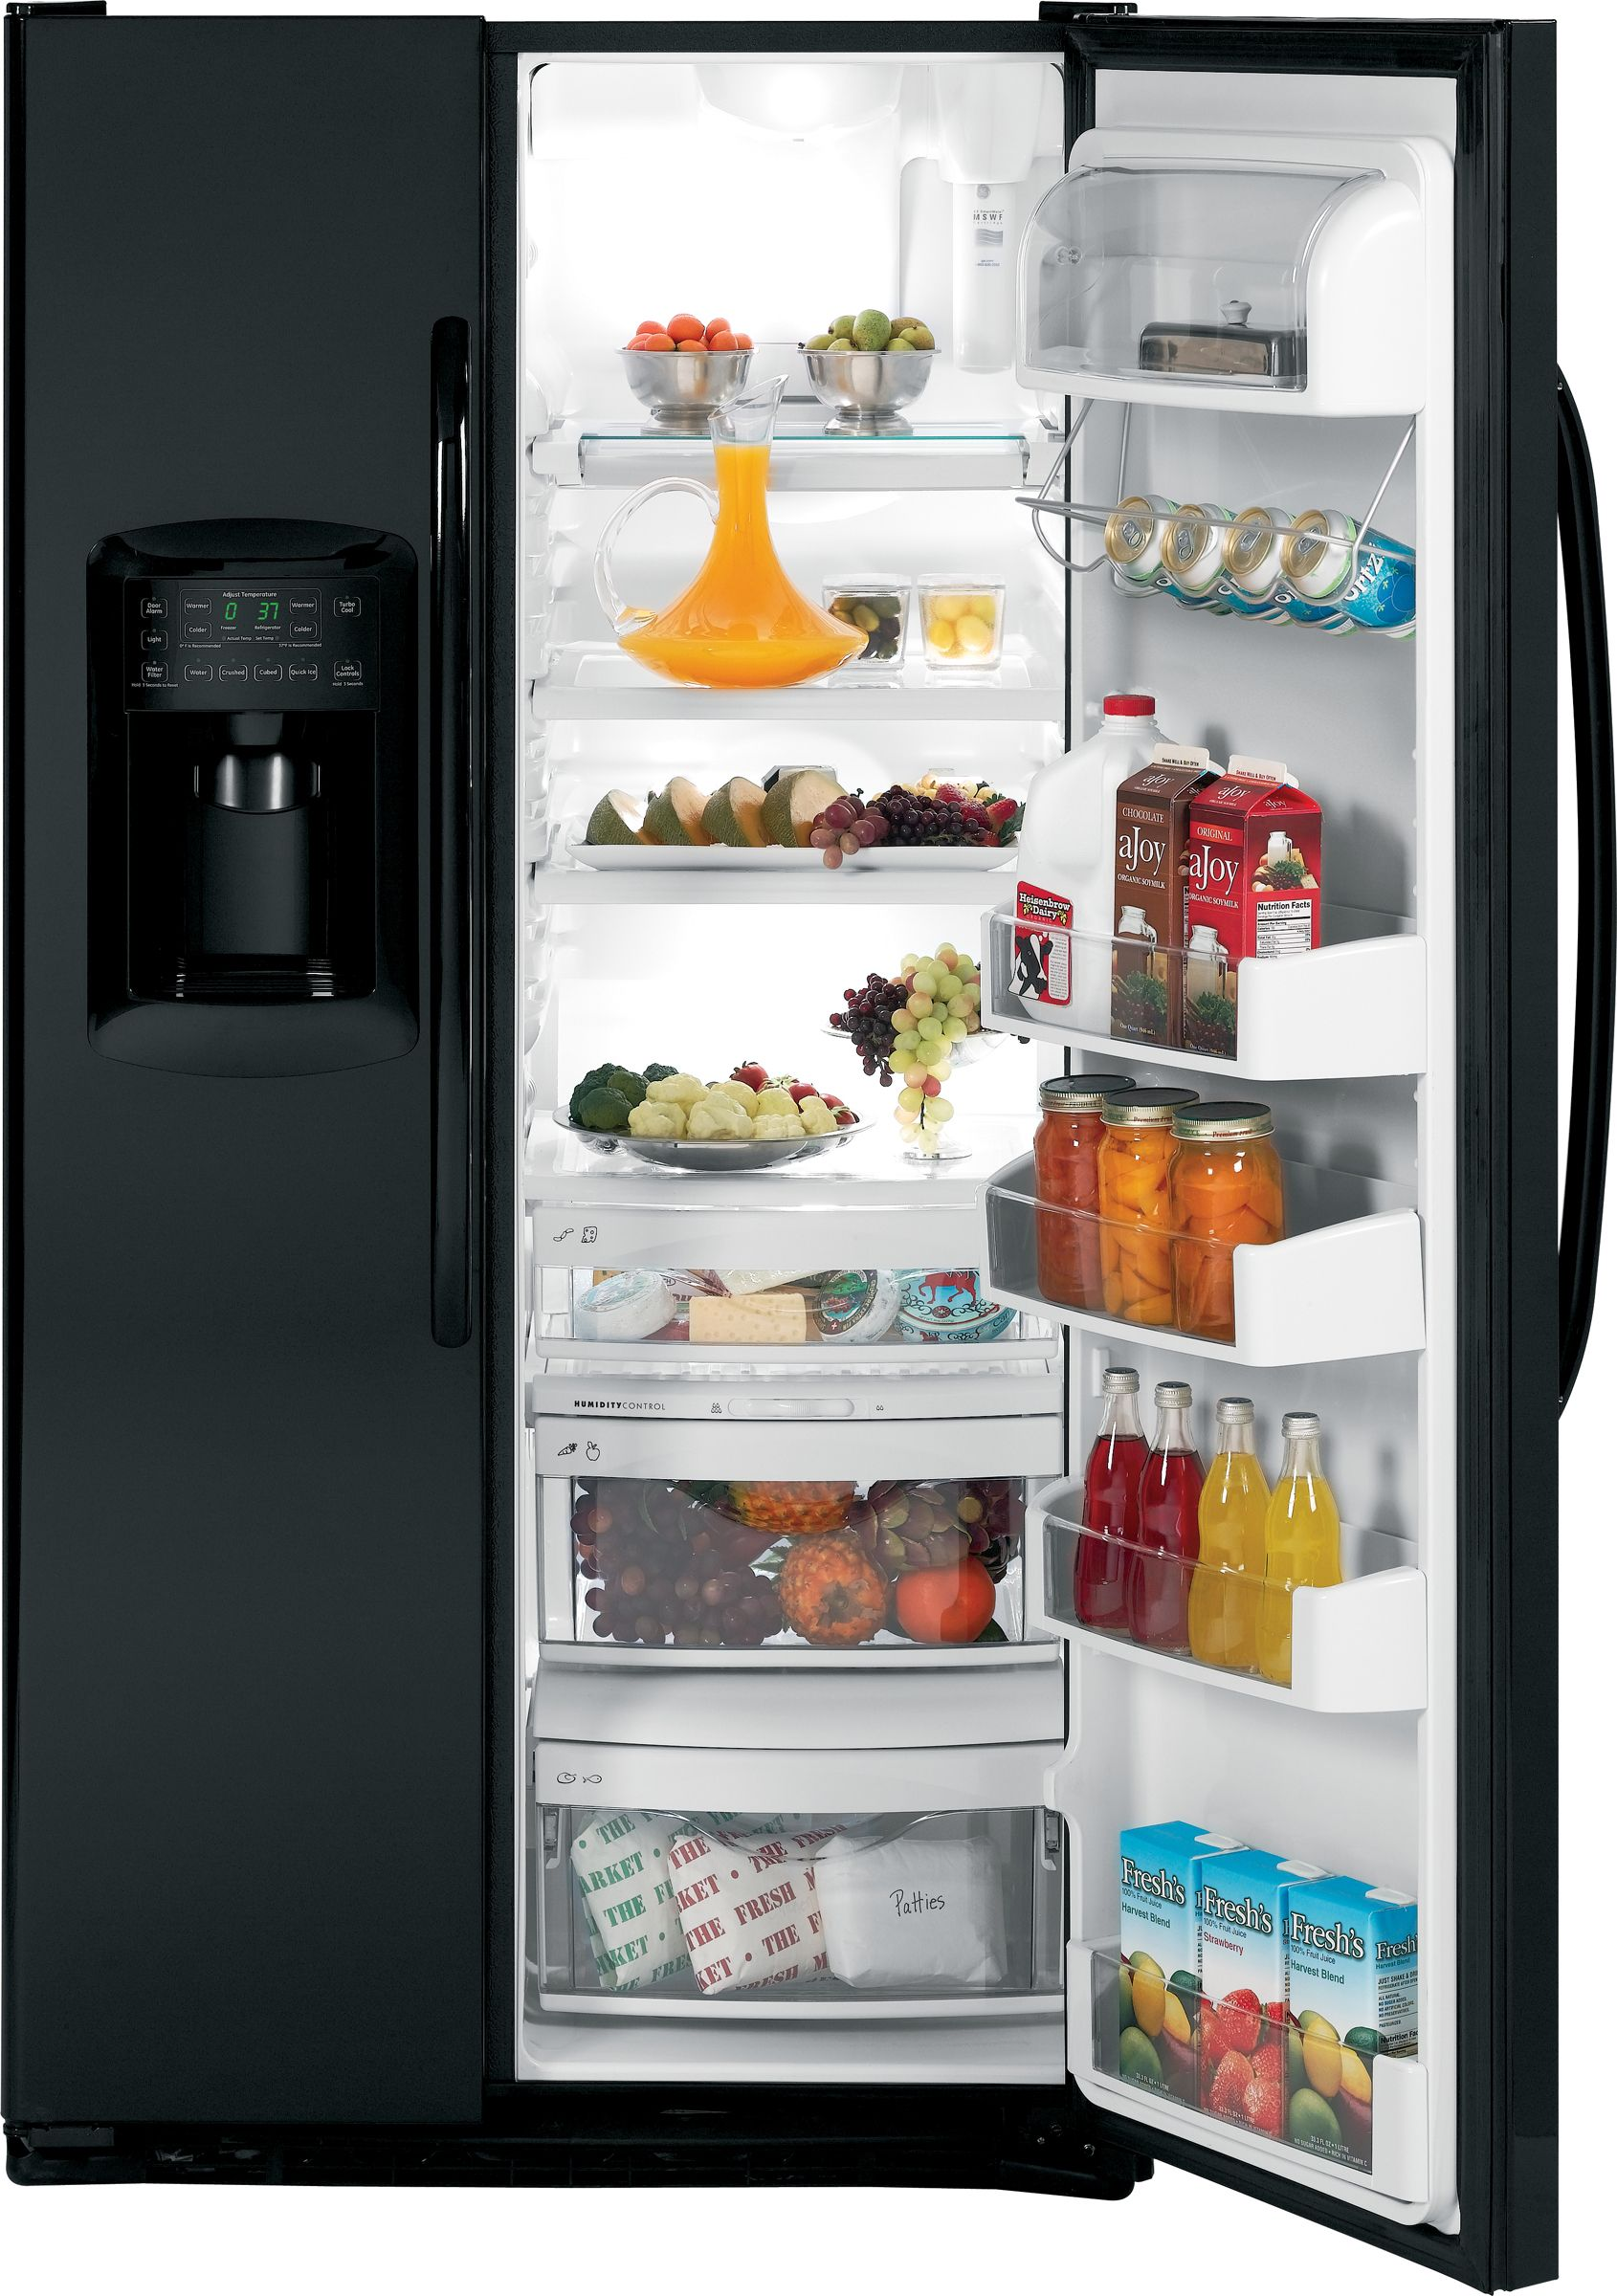 GE 22.6 cu. ft. Counter Depth Side-By-Side Refrigerator